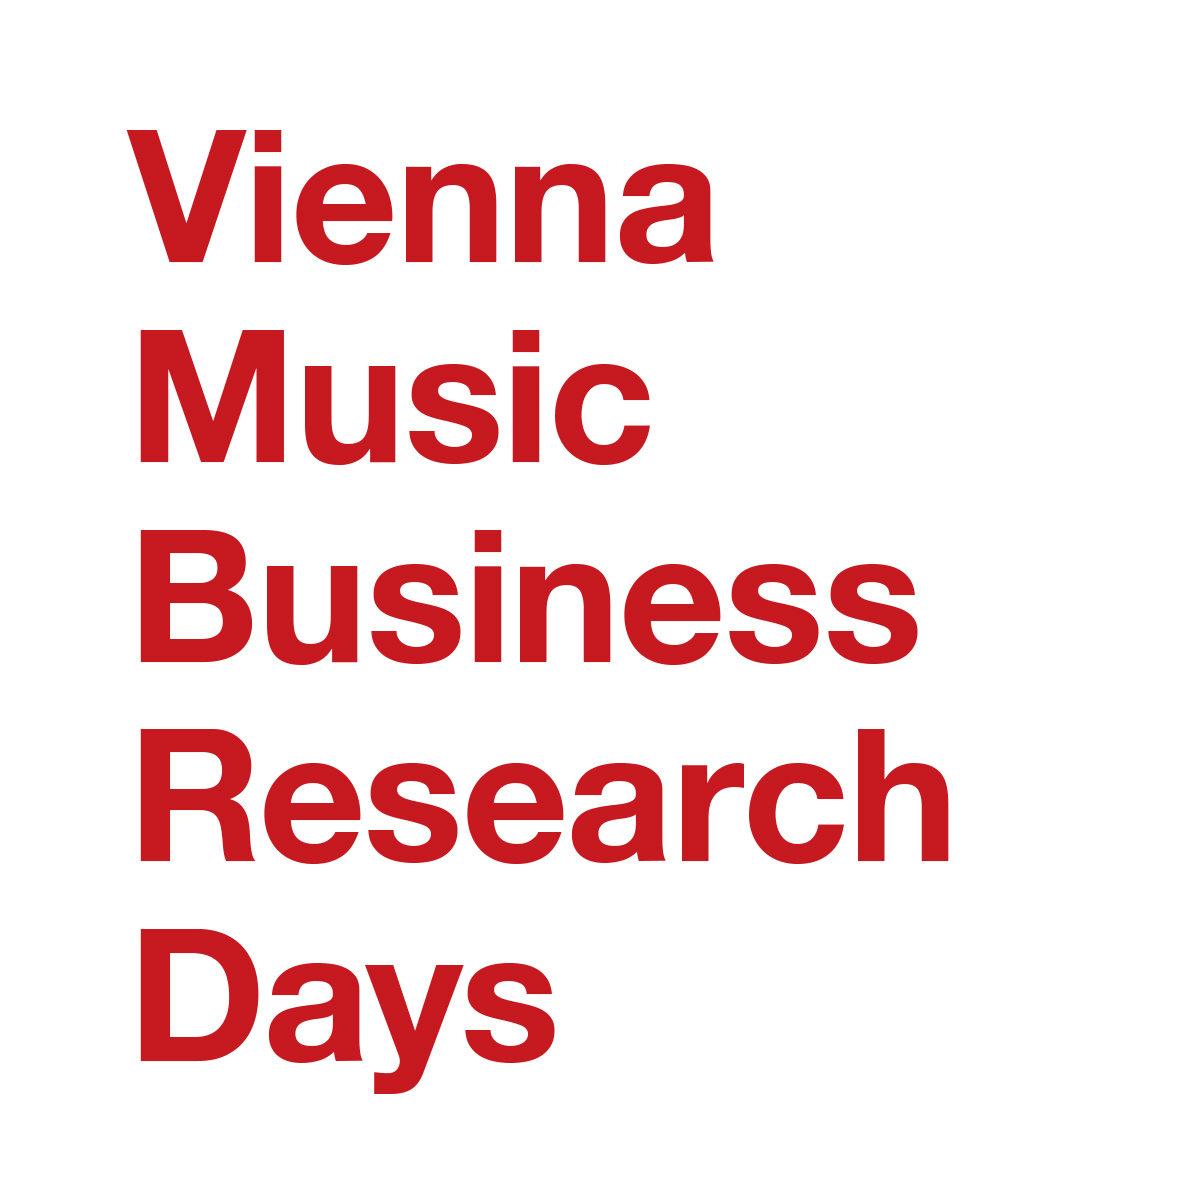 music industry music business research the young scholars workshop as part of the 8th vienna music business research days vienna invites once again young researchers to submit paper